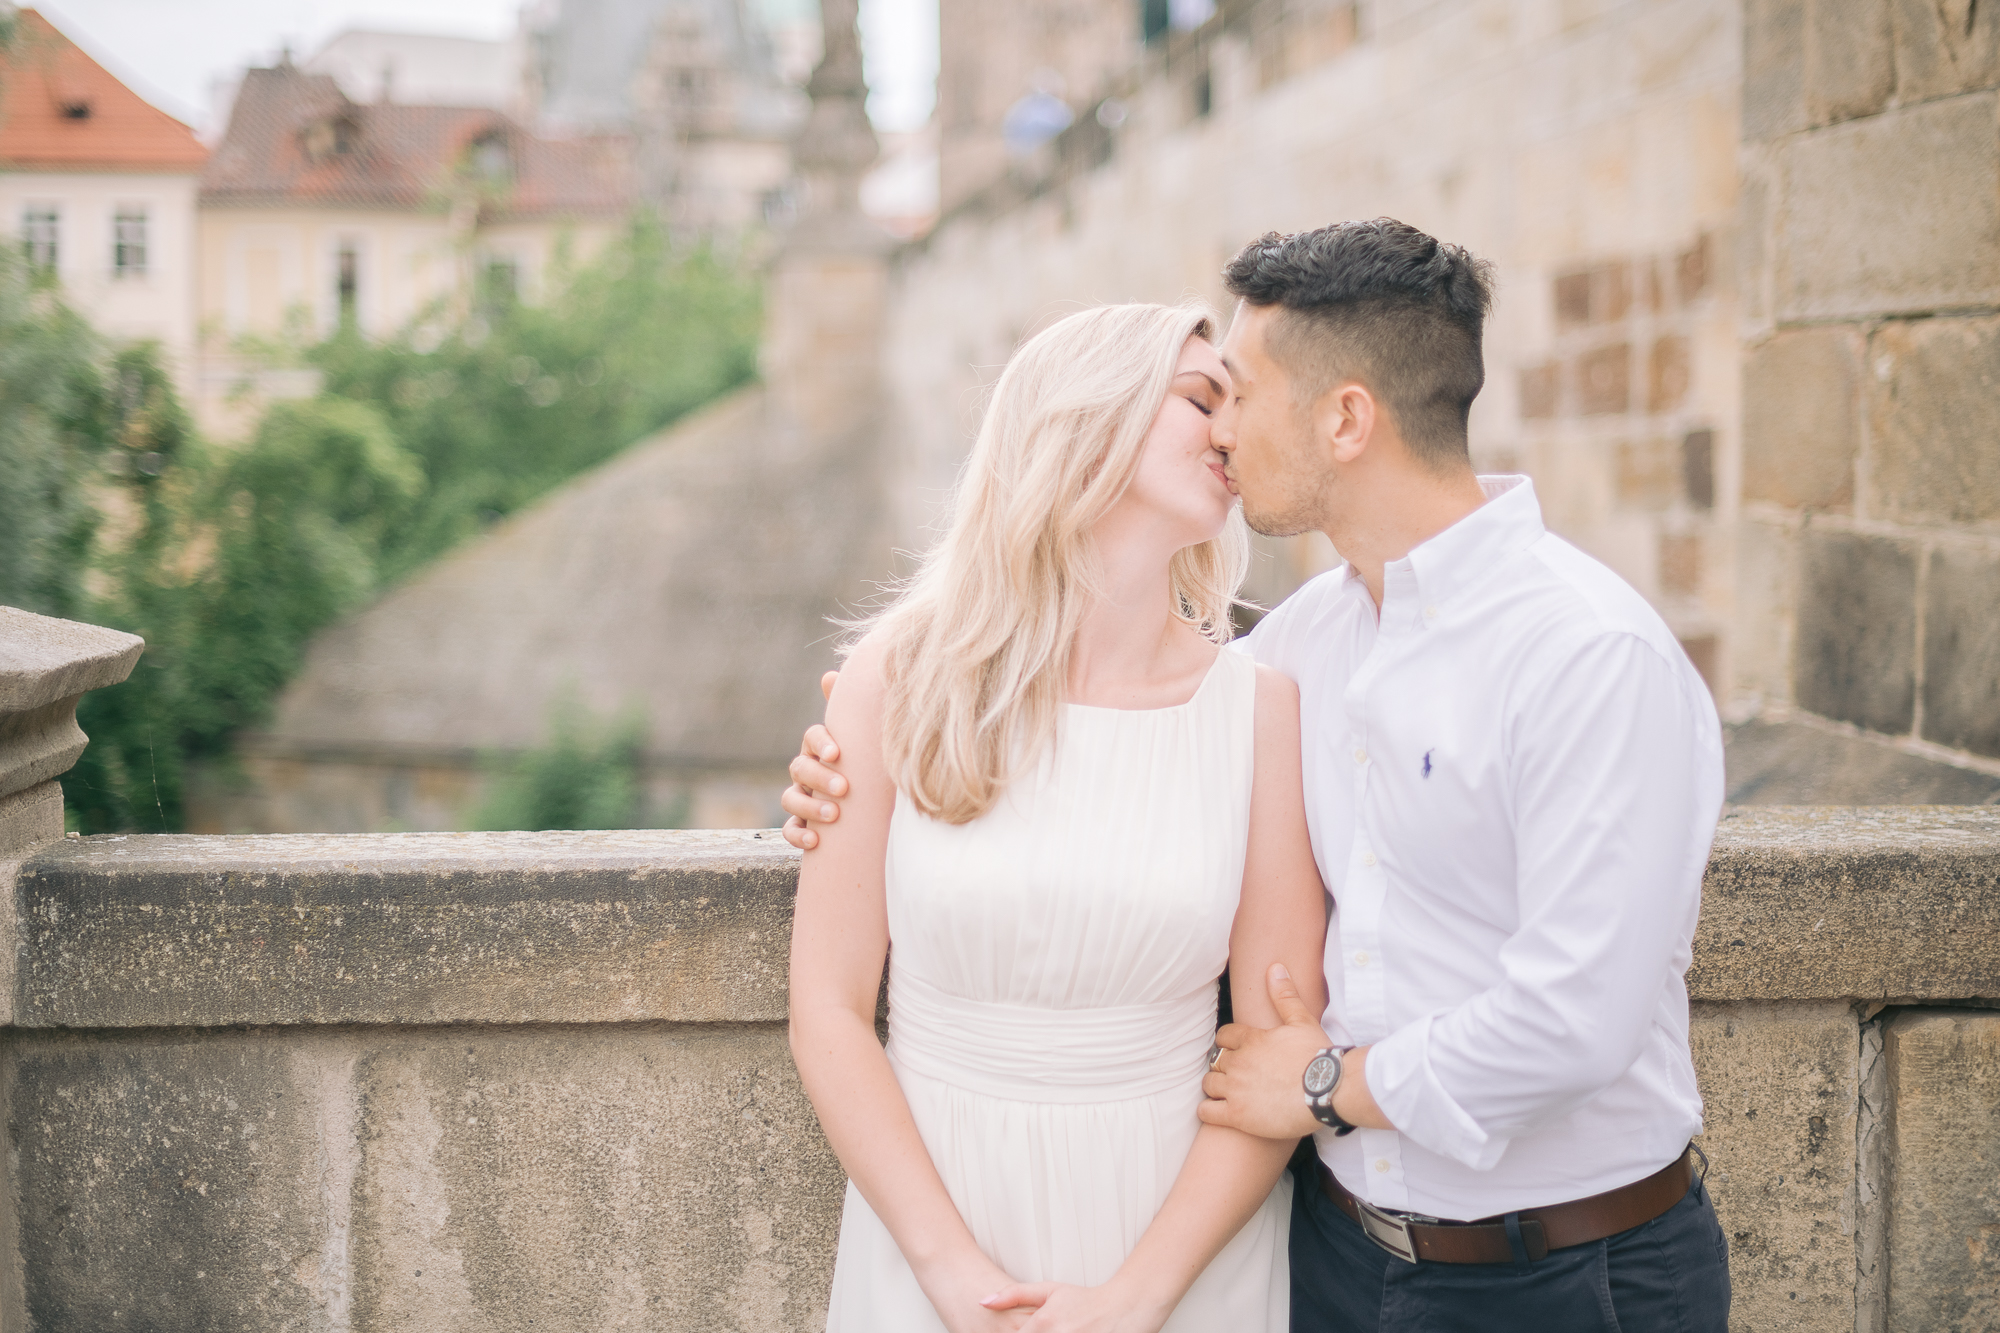 Prague-Wedding-Photography-Matej-Trasak-Engagement-AJ-19.jpg